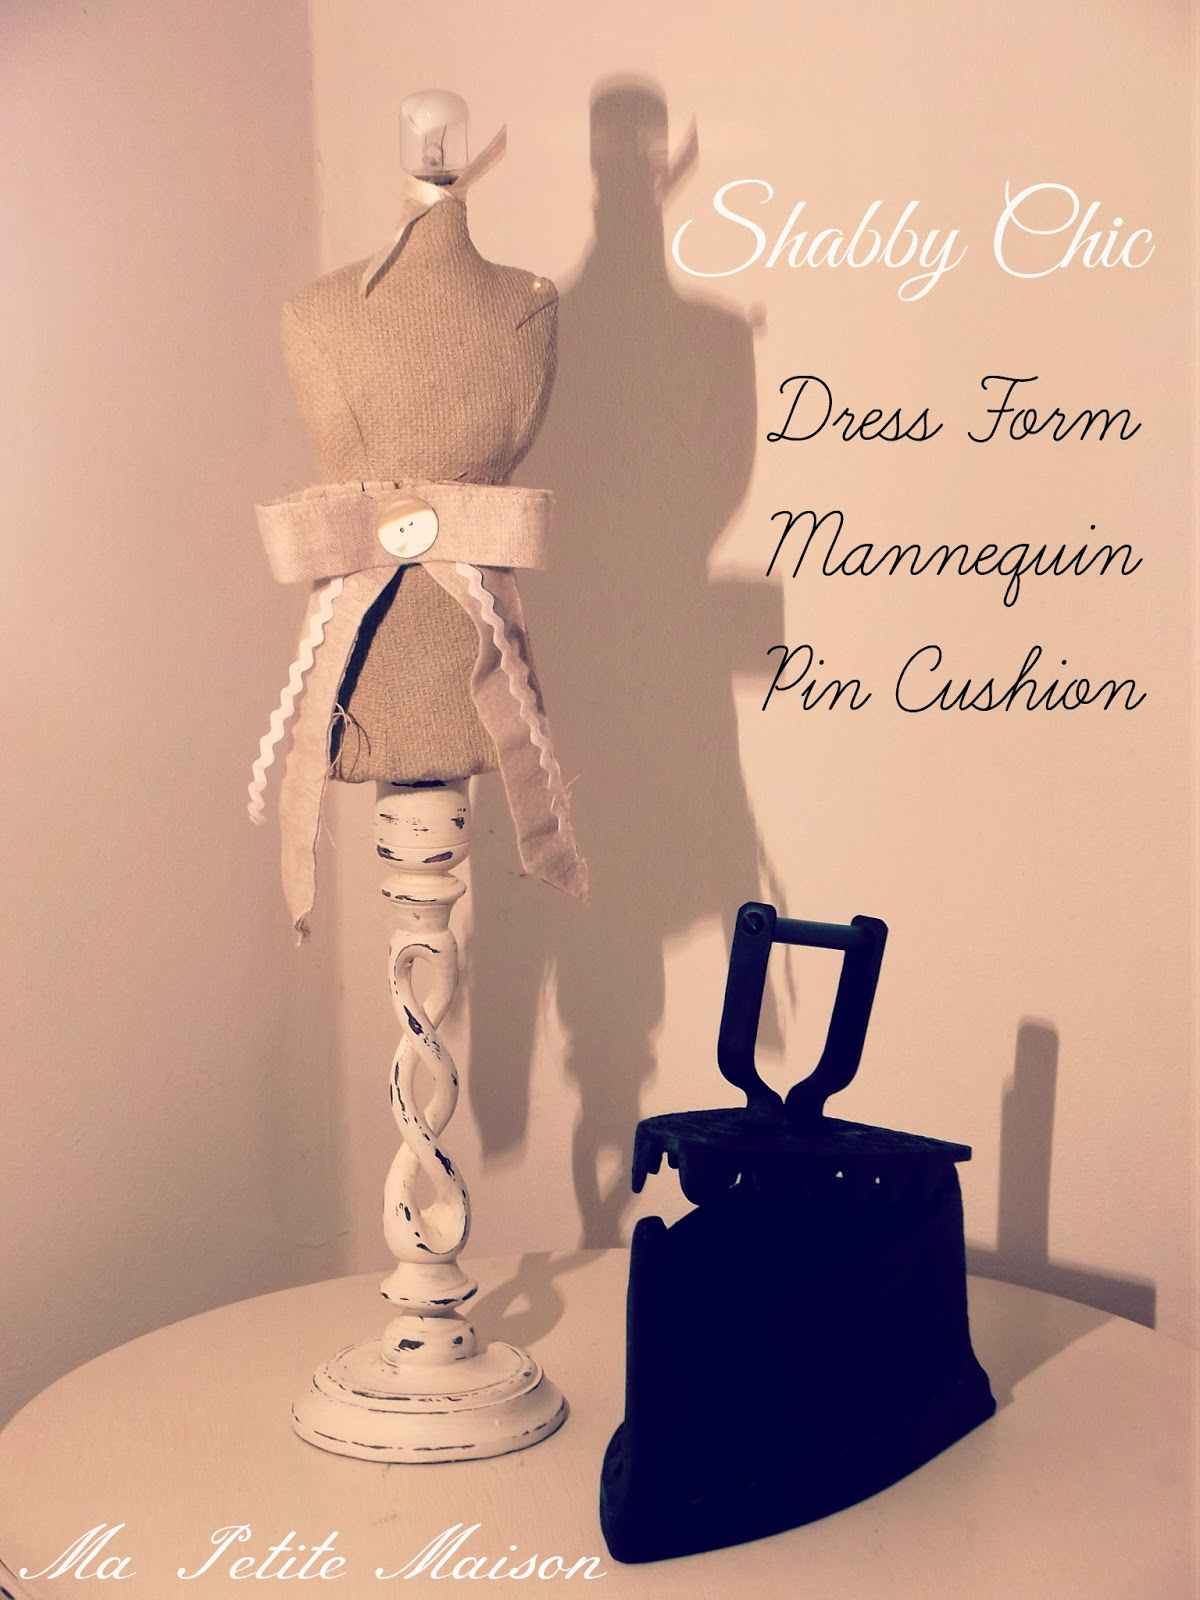 Dress Form Mannequin Pin Cushion